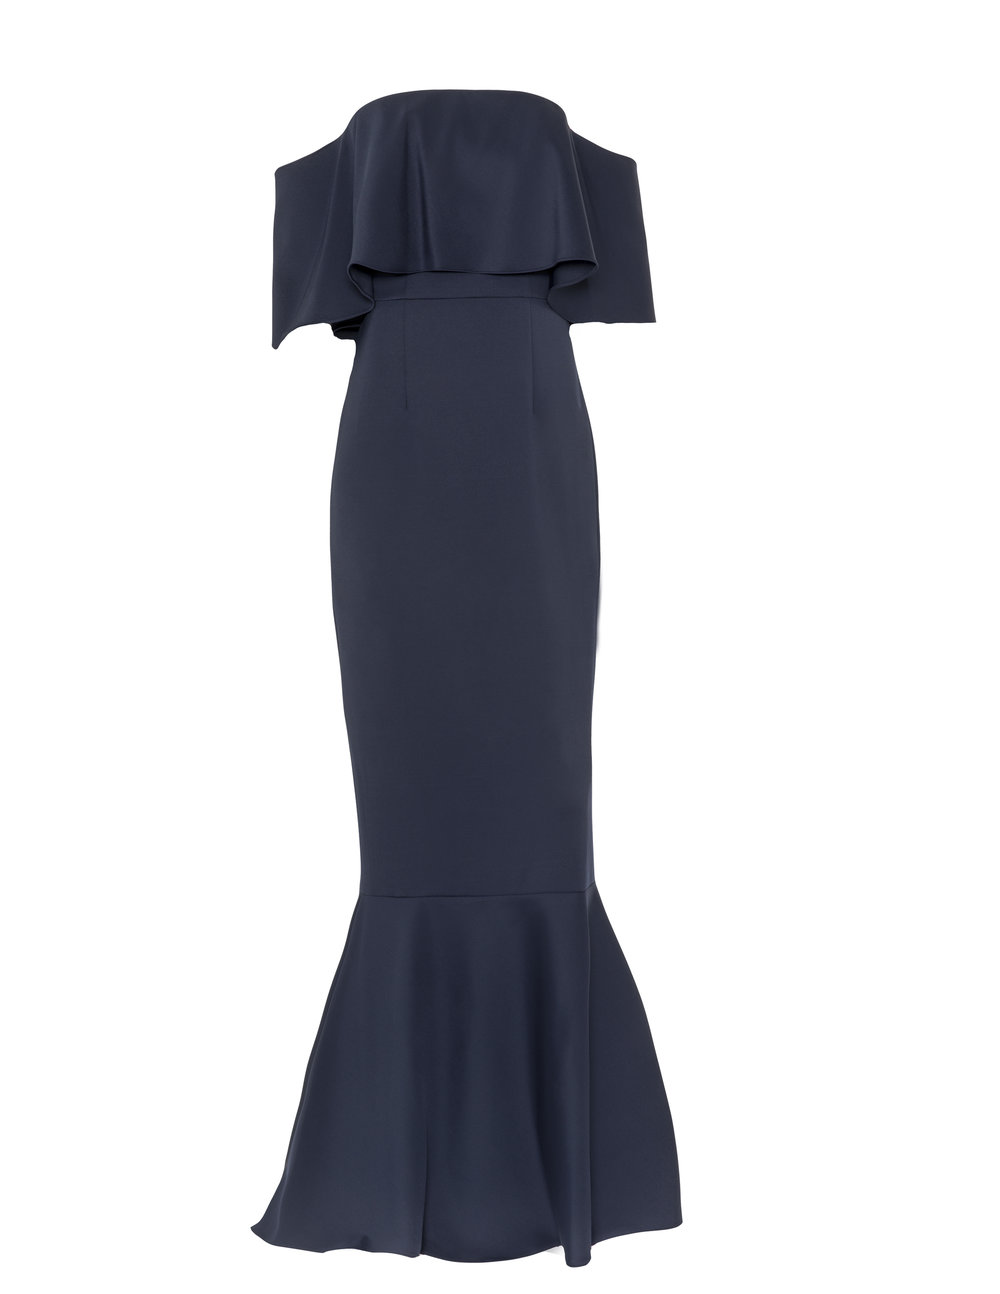 Monique Lhuillier 450500 Navy Stretch crepe